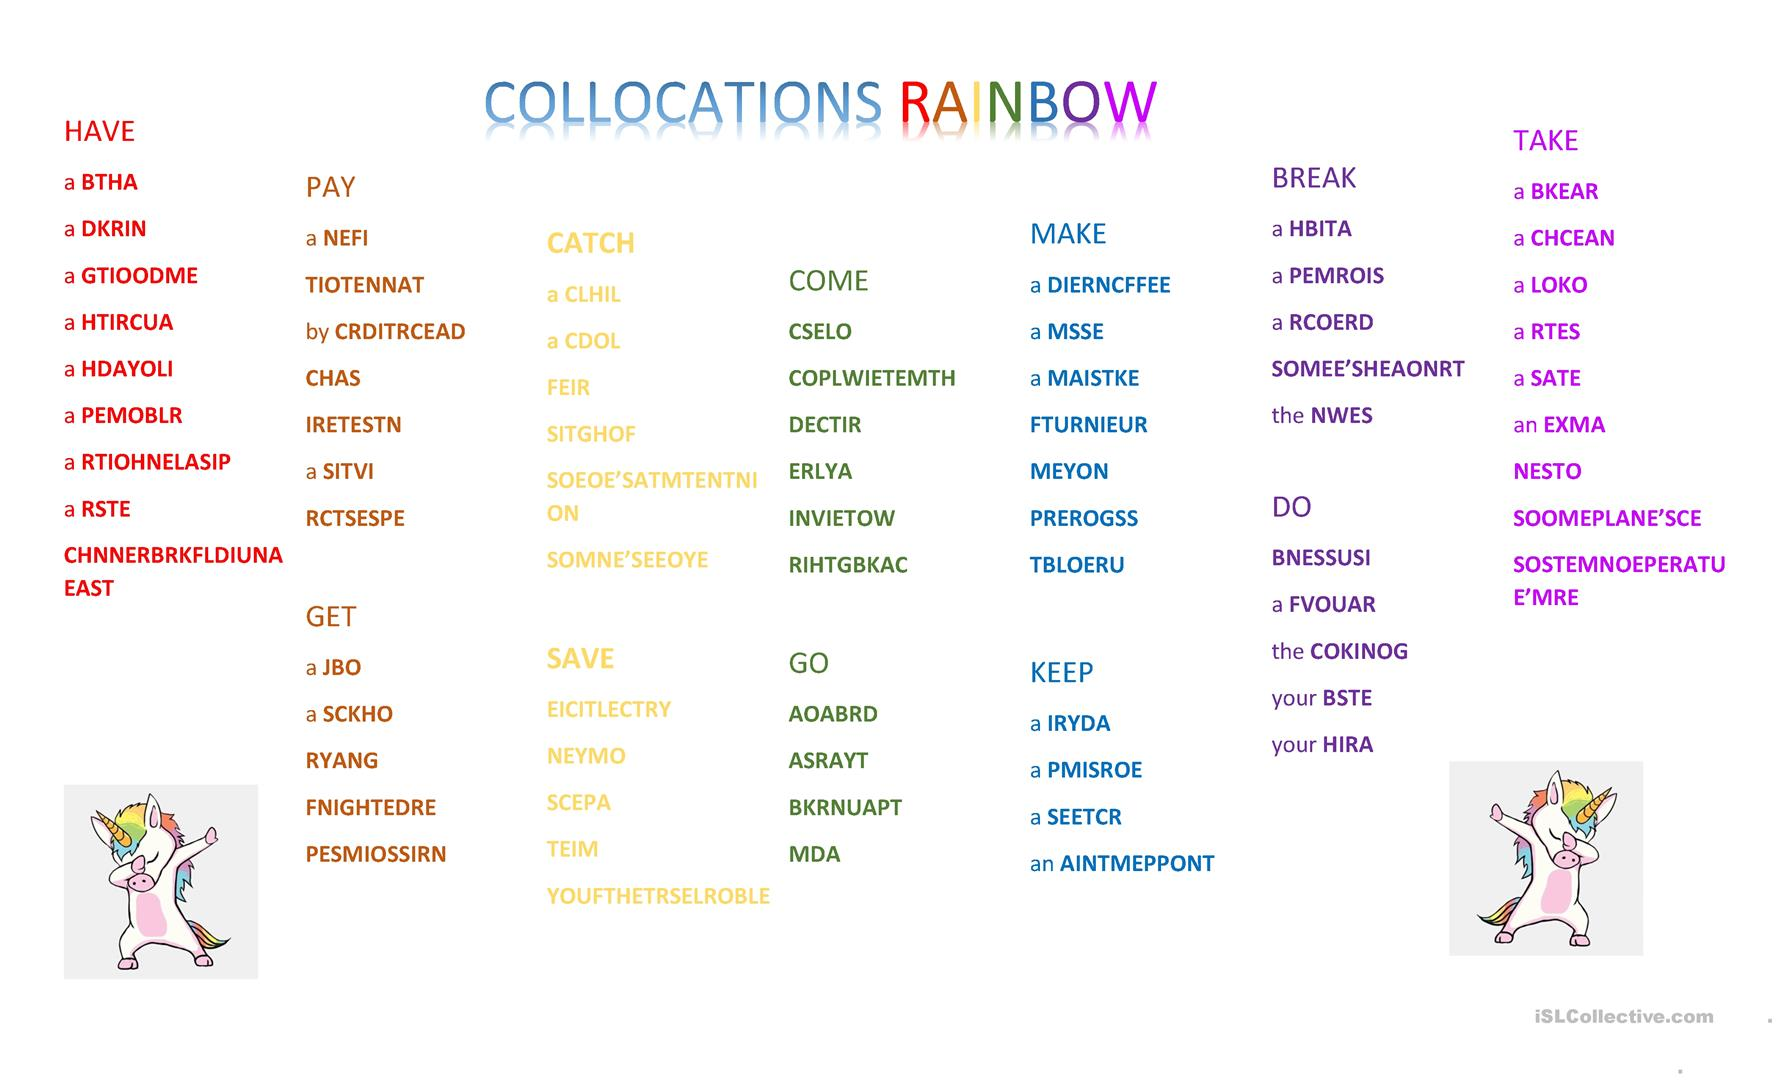 Collocations Rainbow